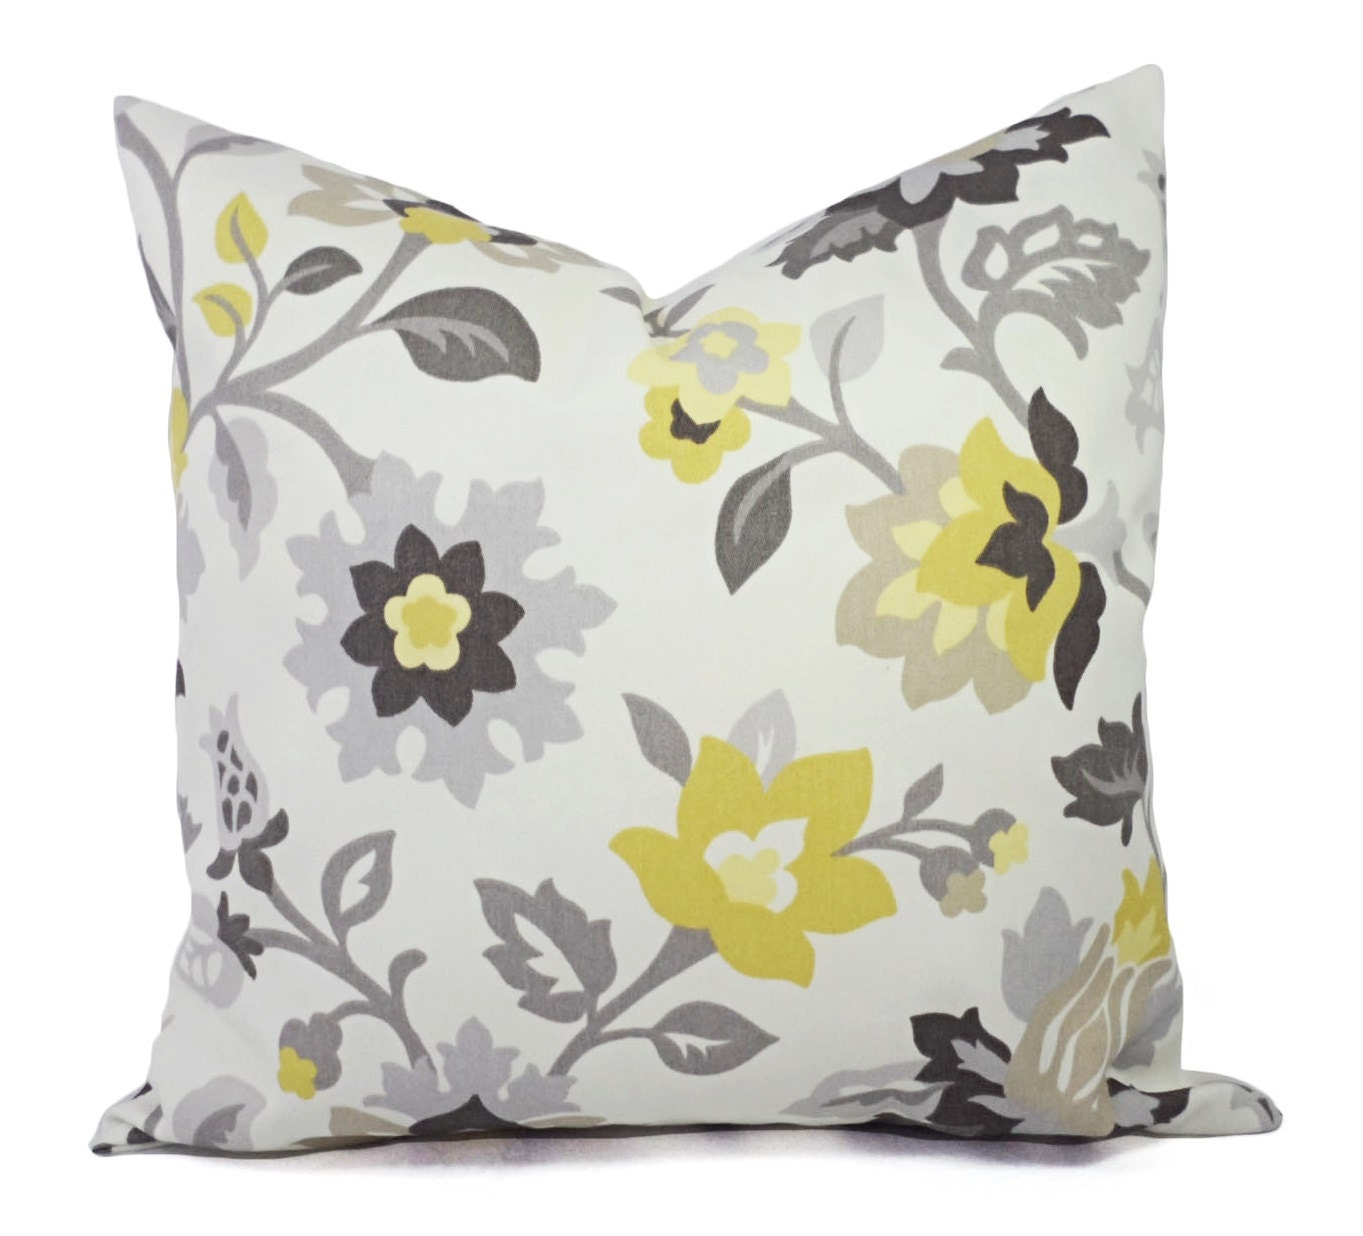 Yellow And Grey Throw Pillow Covers : Two Decorative Pillows Yellow and Grey Pillow Covers